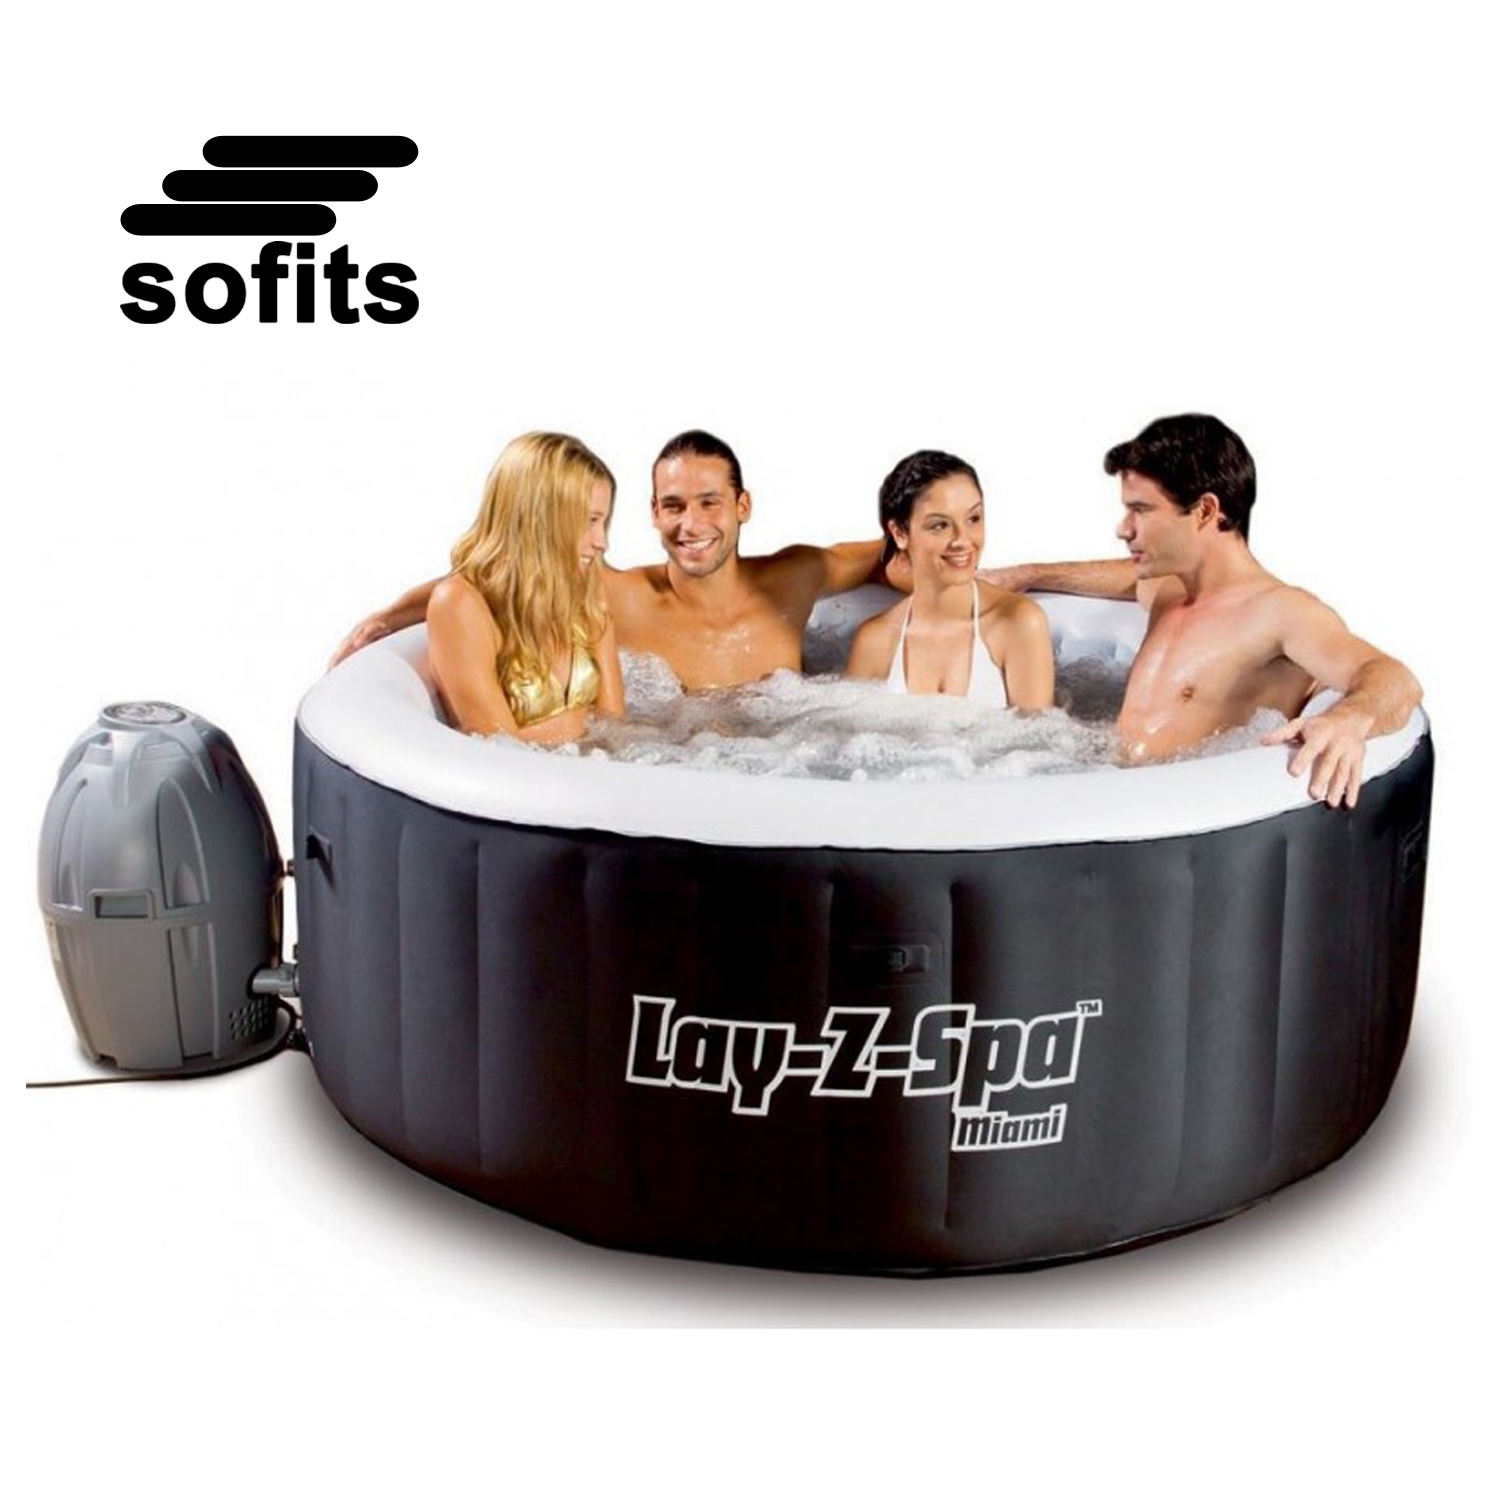 Outdoor and Indoor Inflatable Hot Tubs Spa 54123 Miami Lay Z Spa Hot Tub with Heating System